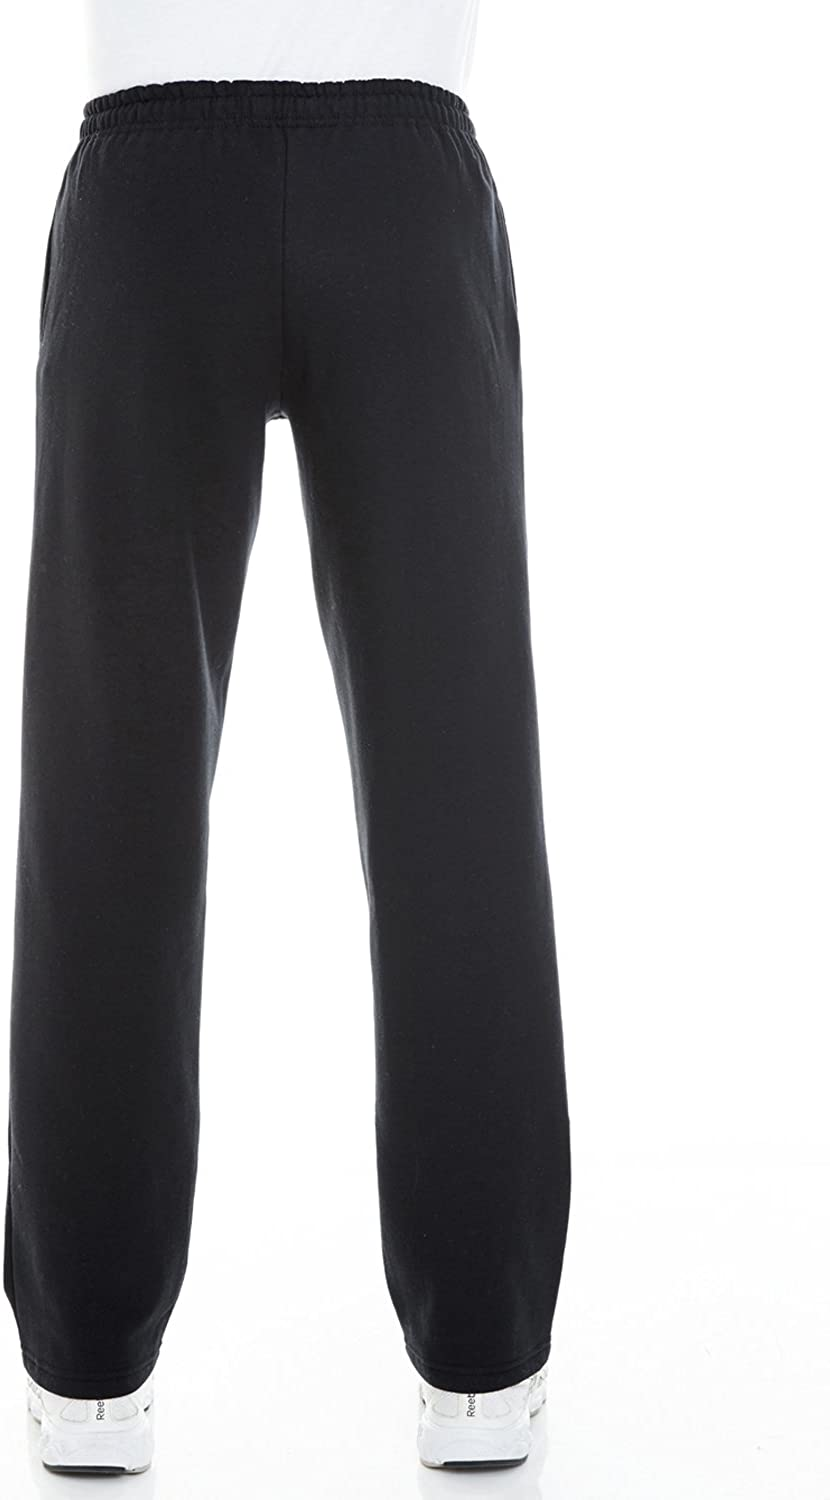 Gildan Mens Fleece Open Bottom Pocketed Pant Sweatpants